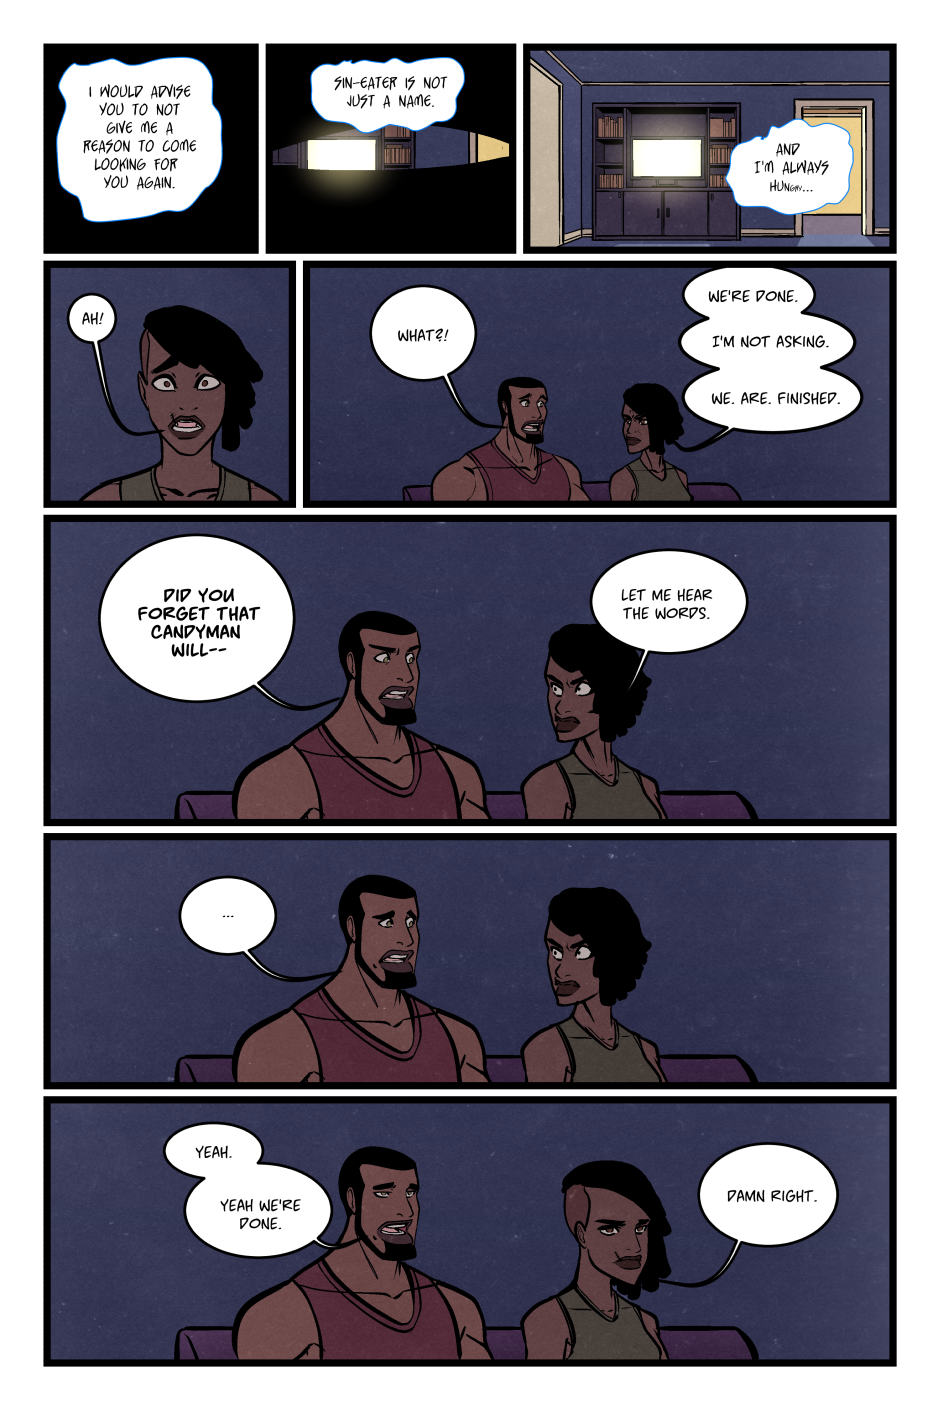 ToW01pg09